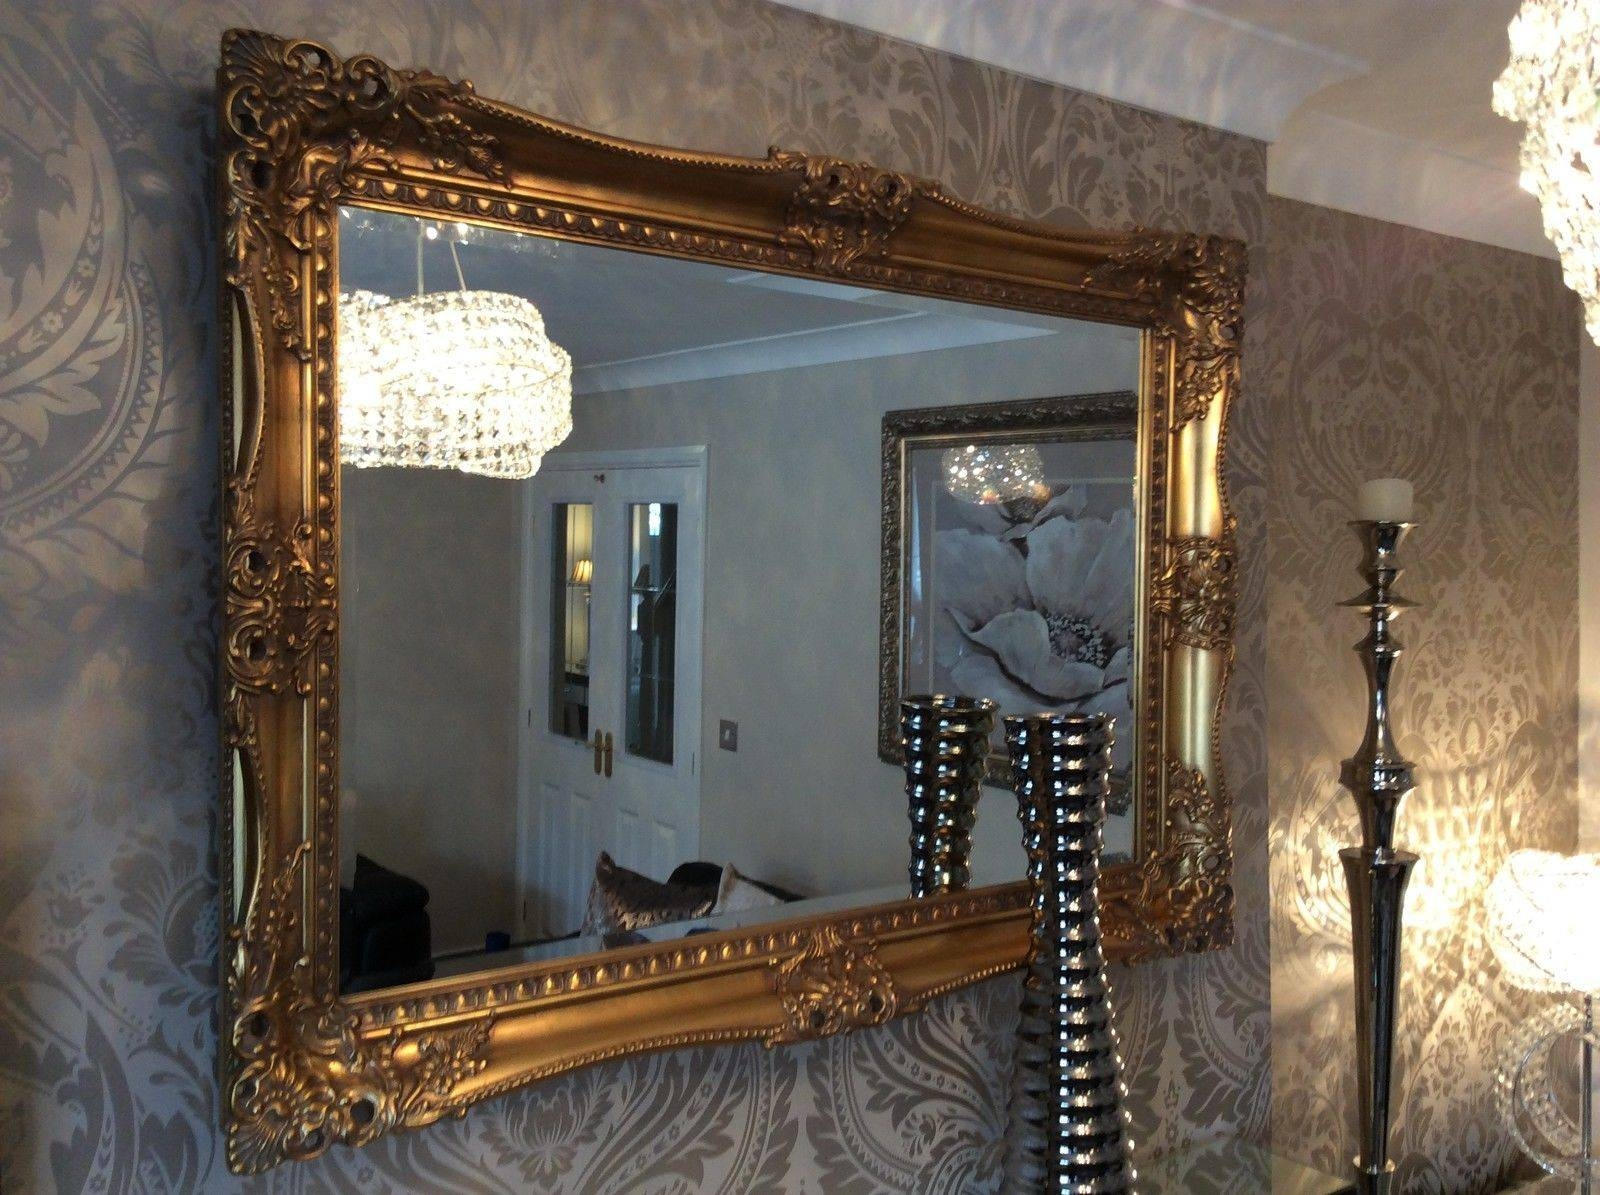 Gold Shabby Chic Ornate Decorative Carved Wall Mirror 37.5 X 27.5 New regarding Gold Shabby Chic Mirrors (Image 3 of 15)